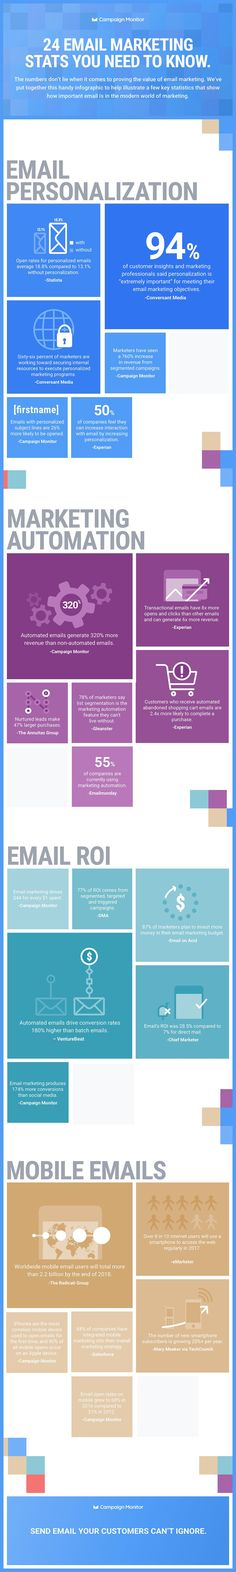 24 Email Marketing Stats to Guide Your 2018 Strategy [Infographic]